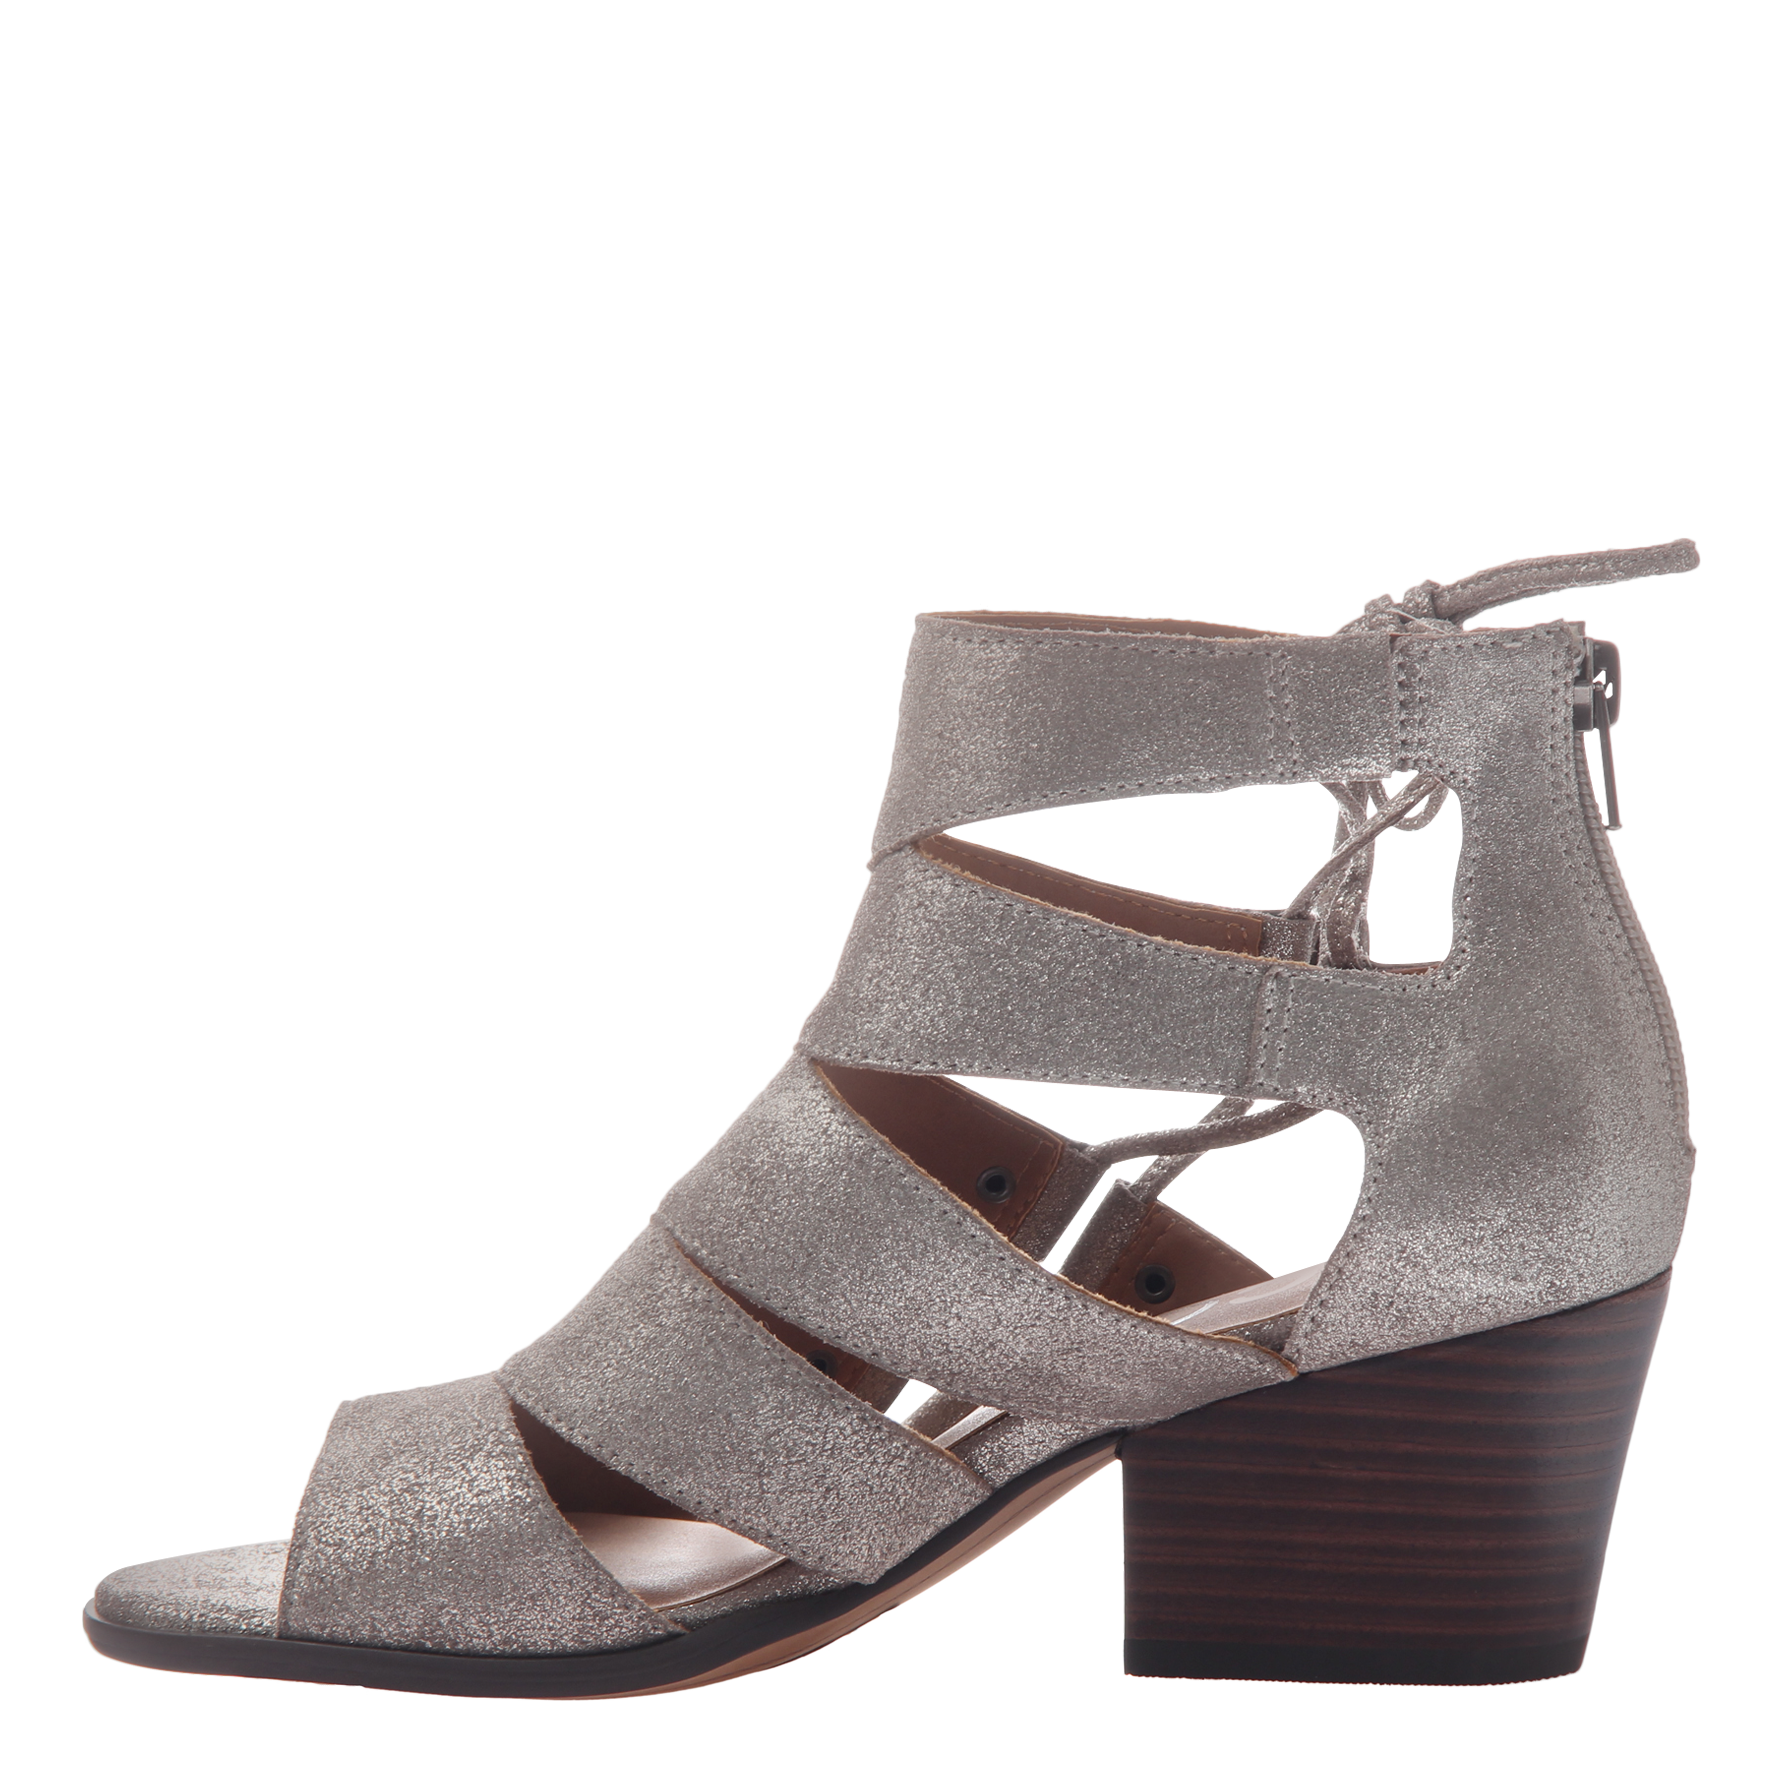 Tatiana womens heeled sandal in grey silver inside view